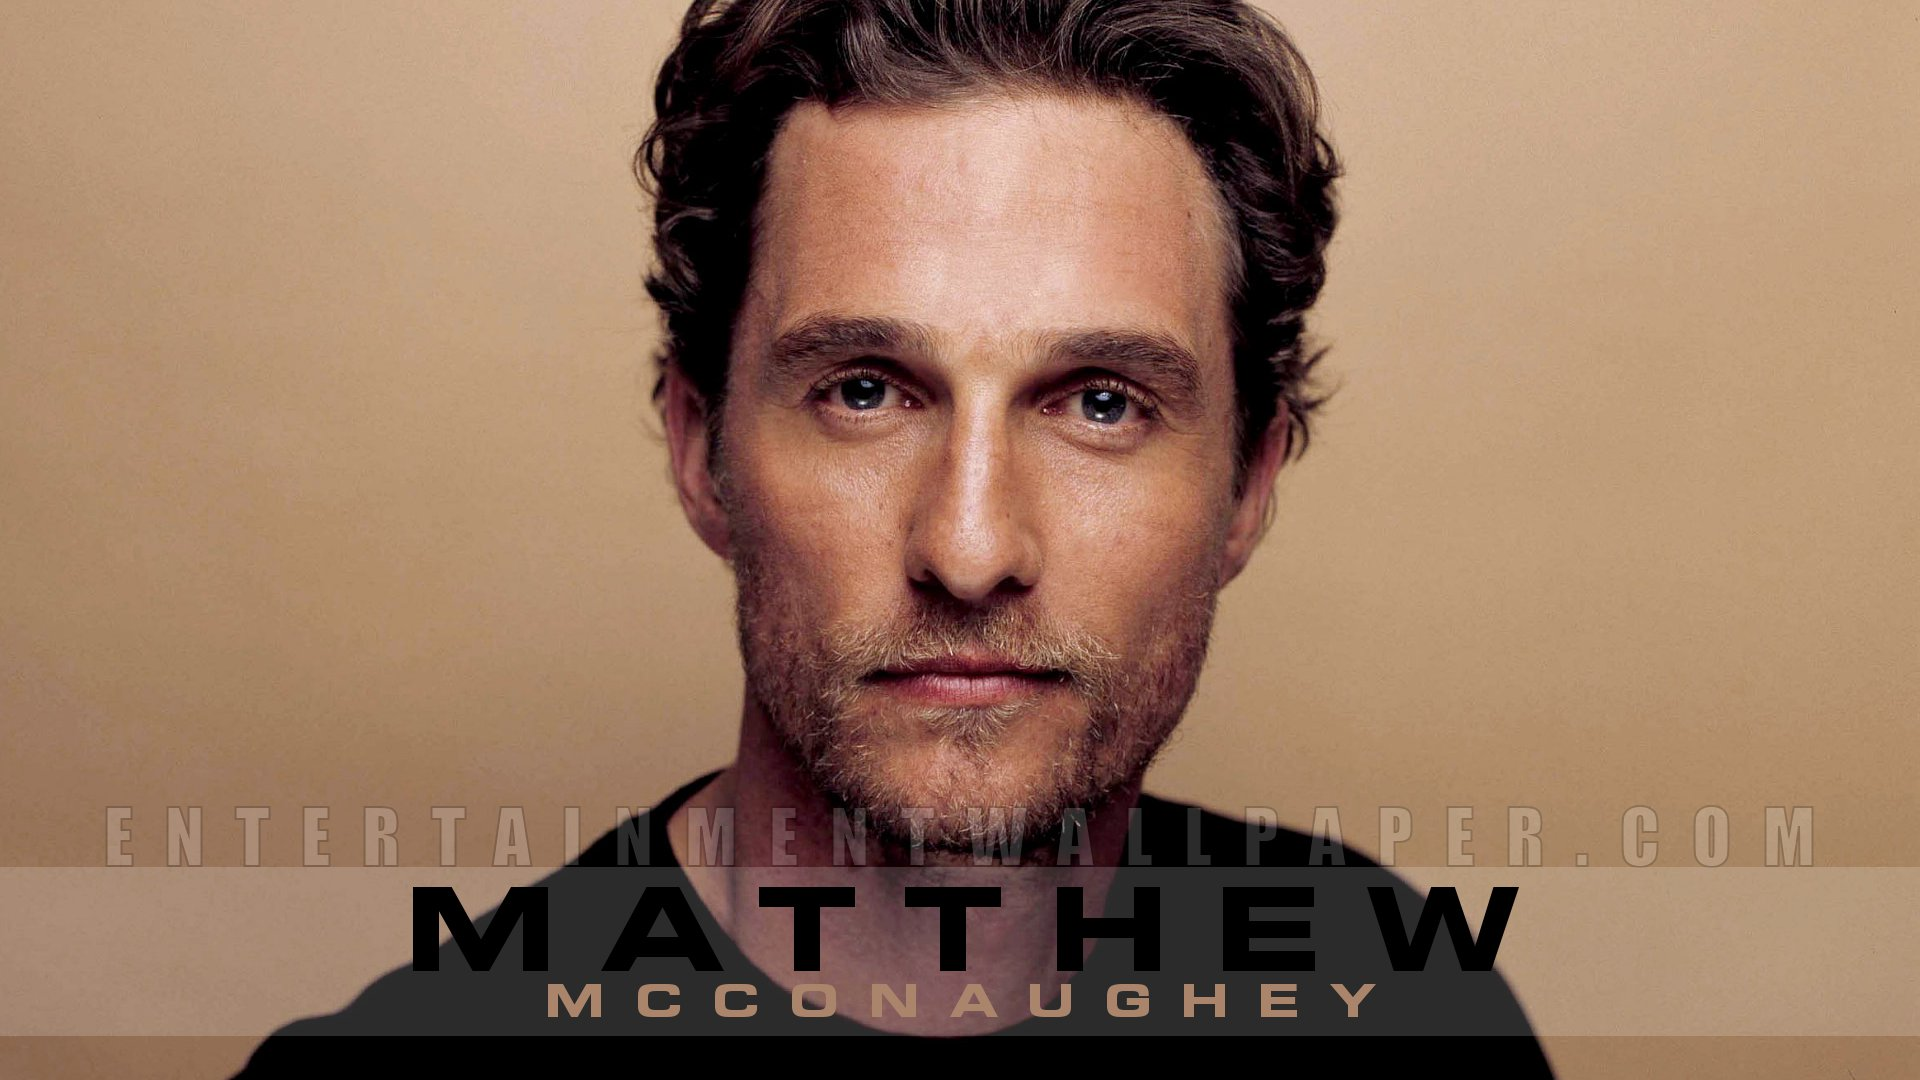 Matthew McConaughey Wallpaper - Original size, download now.